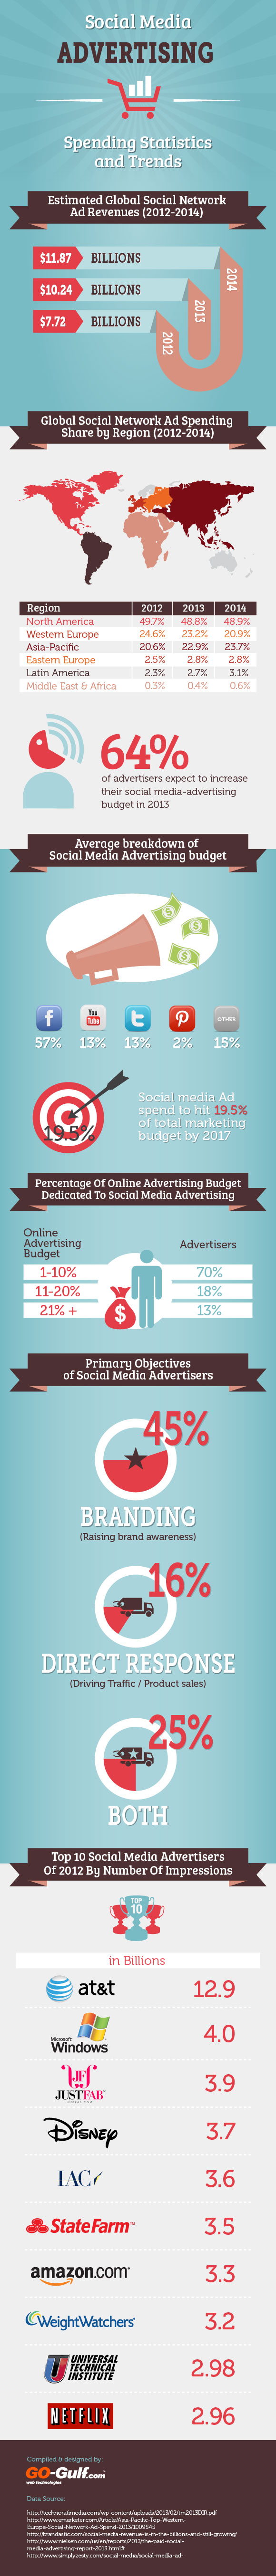 Social Media Advertising Spending Statistics And Trends